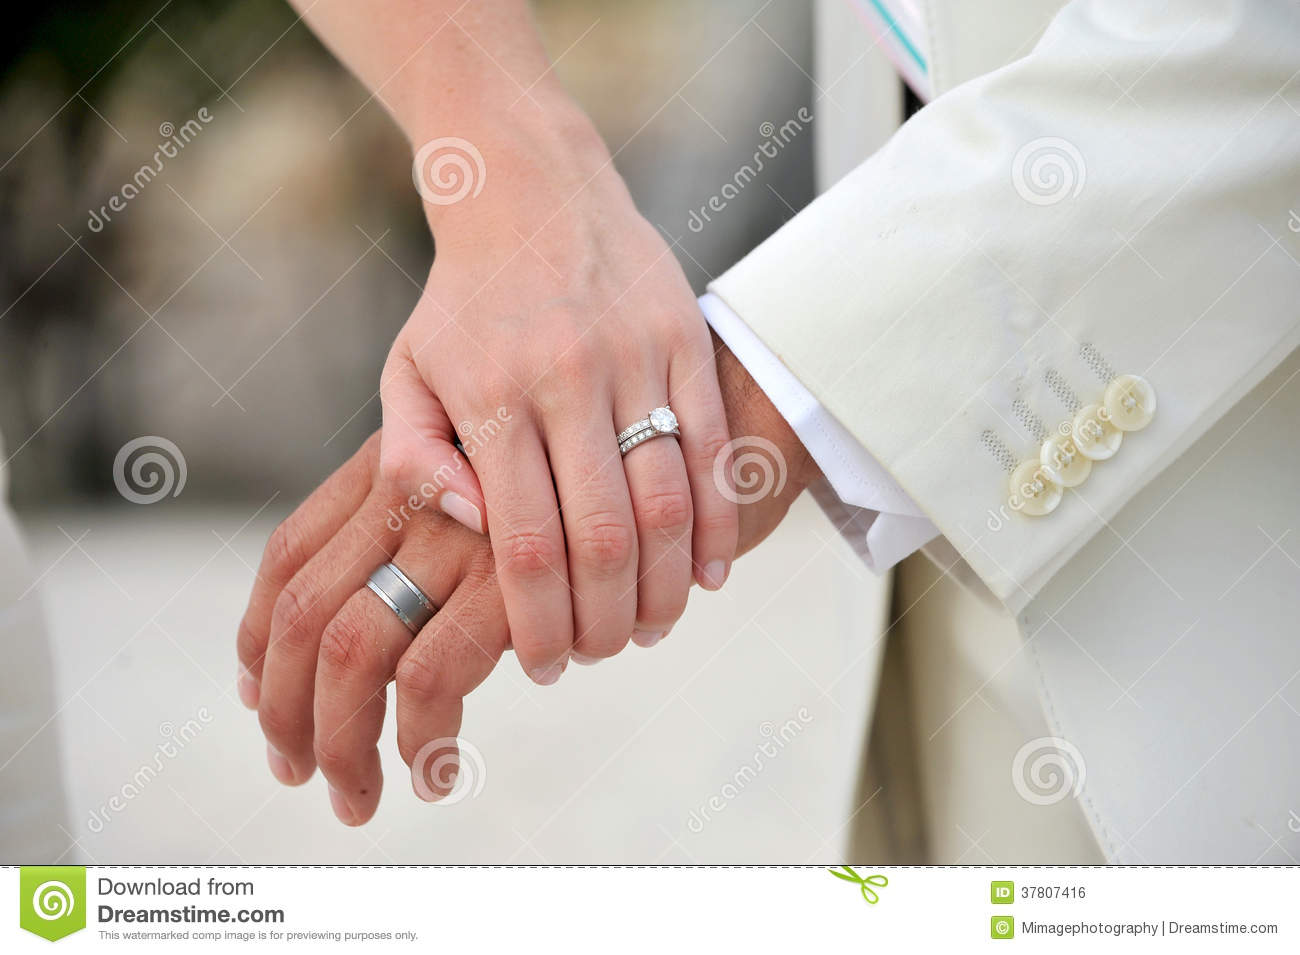 bride putting wife groom finger put and the brides s on together ceremonygroom during hands engagement wedding his ring couple a video concept rings of grooms lovely togetherwedding ceremony